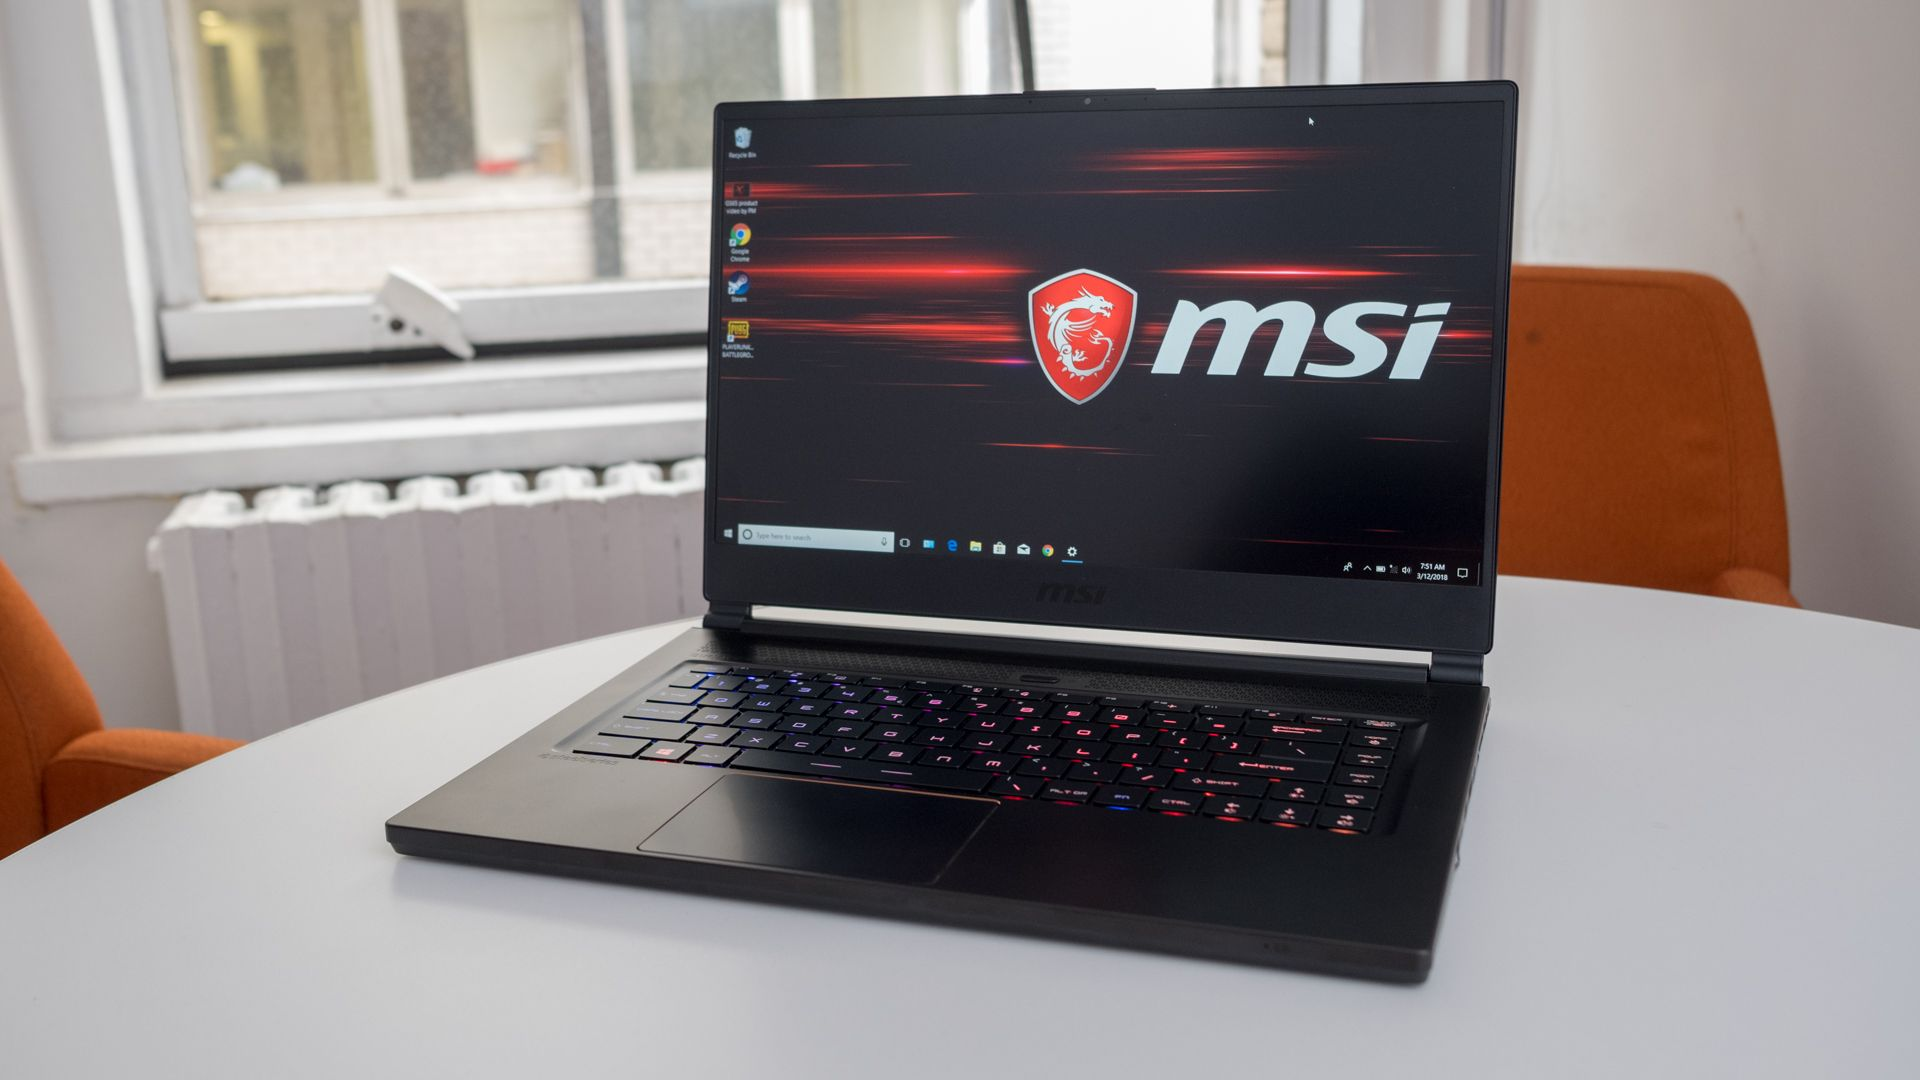 Magnificent Best Gaming Laptops 2019 The 10 Top Gaming Laptops Weve Download Free Architecture Designs Itiscsunscenecom